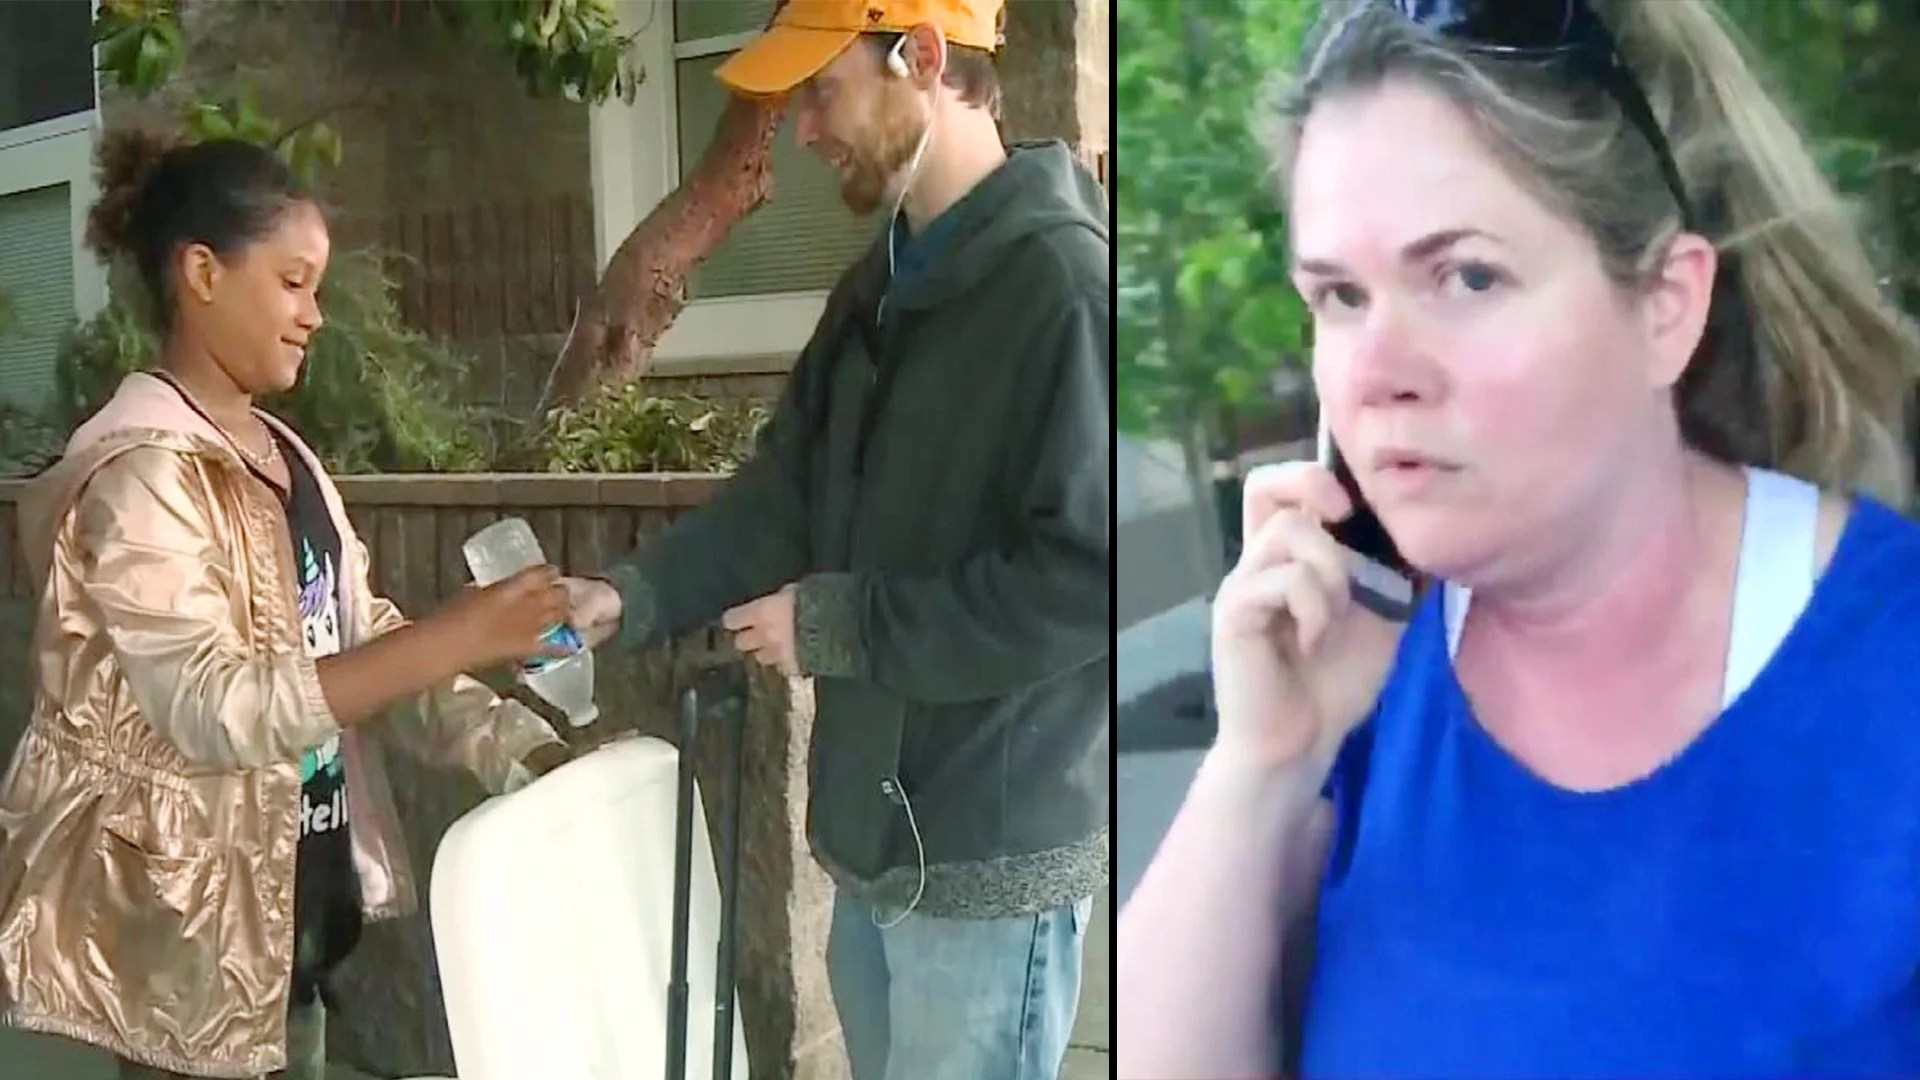 Permit Patty Who Called Cops On Girl Selling Water I